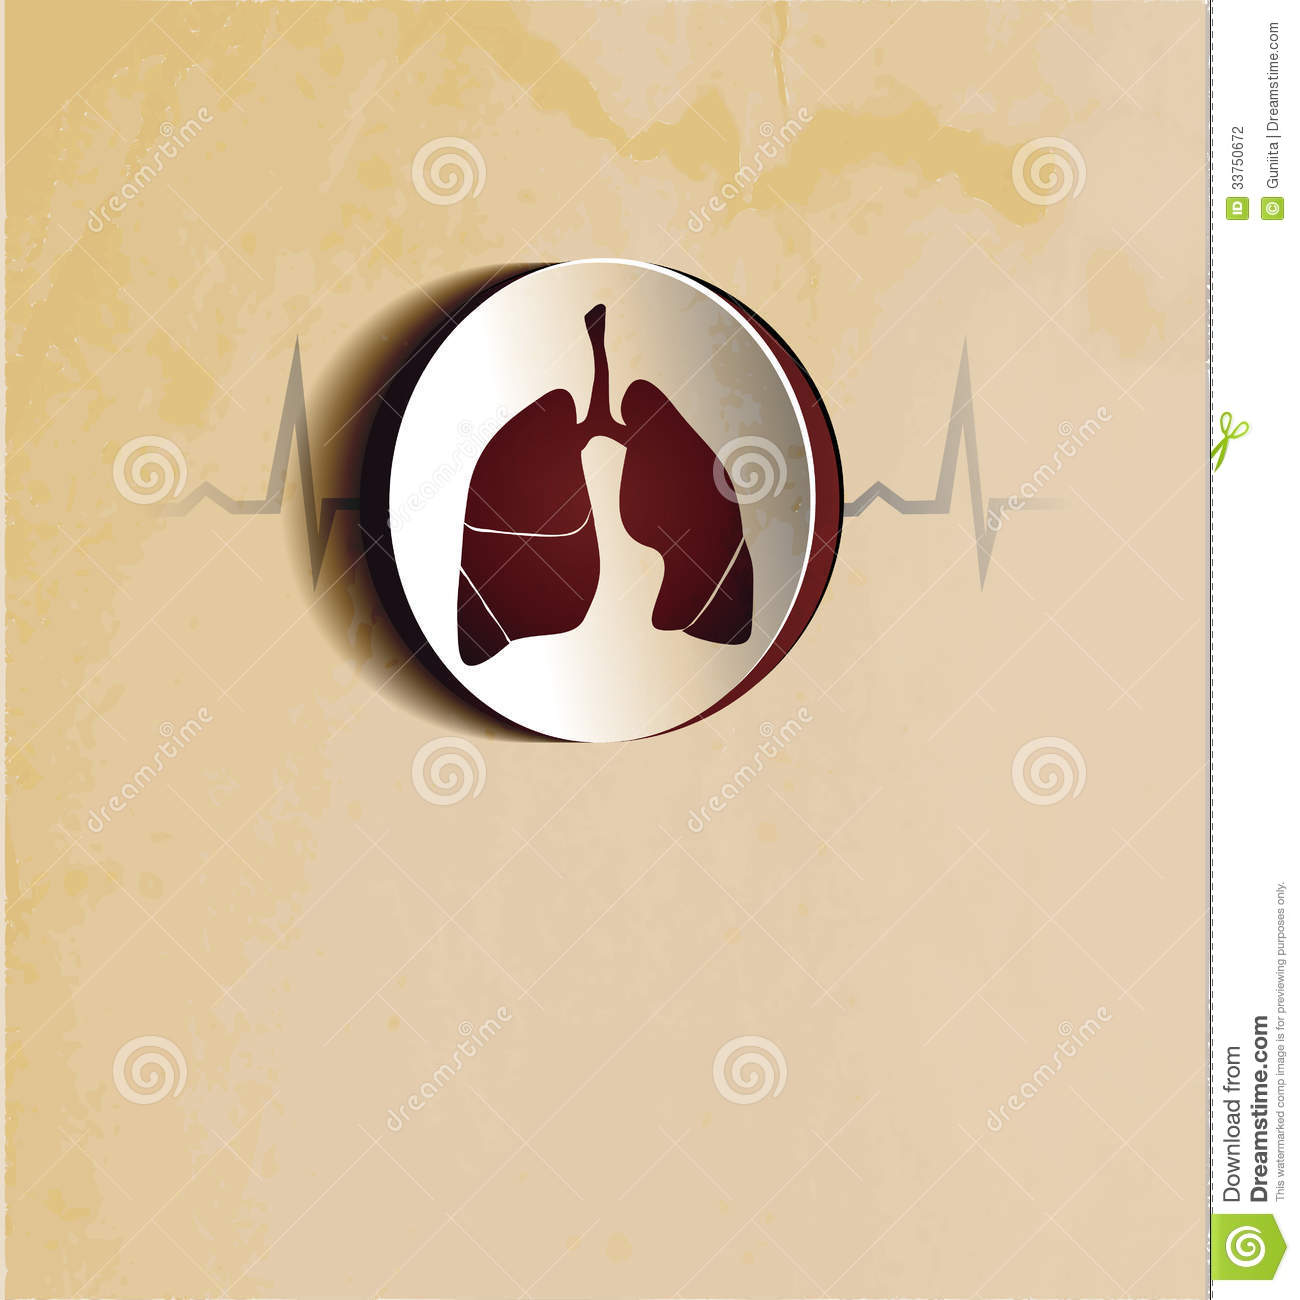 Royalty Free Stock Image Detailed Vectoral Farm Animal Silhouettes Image8844776 together with Stock Photography Vintage Lungs Wallpaper Abstract Medical Design Image33750672 together with Stock Photography Vintage Envelope Paper Text Old Fashioned Letter Vector Illustration Image32595102 additionally Stock Photography Confused Diagram Means Dont Know Perplexed Meaning Image40197502 also Stock Image Osteoporosis Image26367841. on vintage architecture diagram